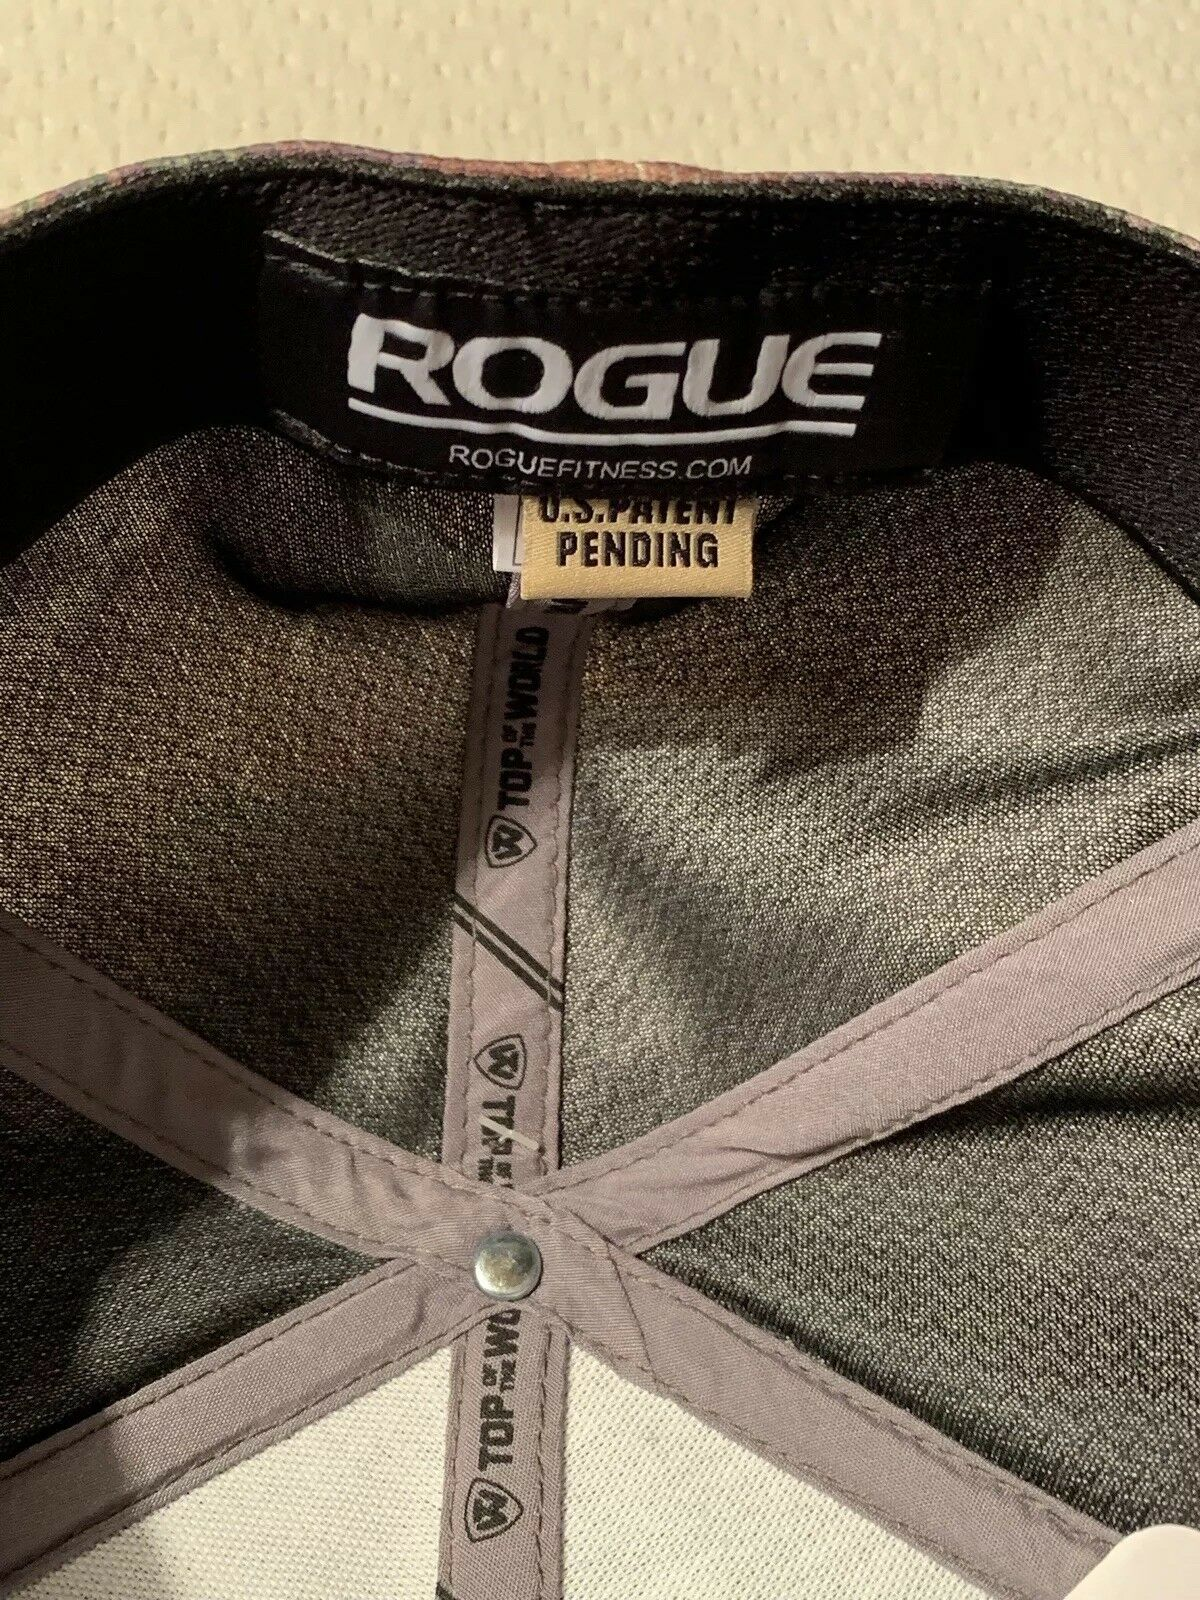 Rogue Fitness Froning Crossfit Real Tree Camo Baseball Hat Cap *R R* New w// Tags